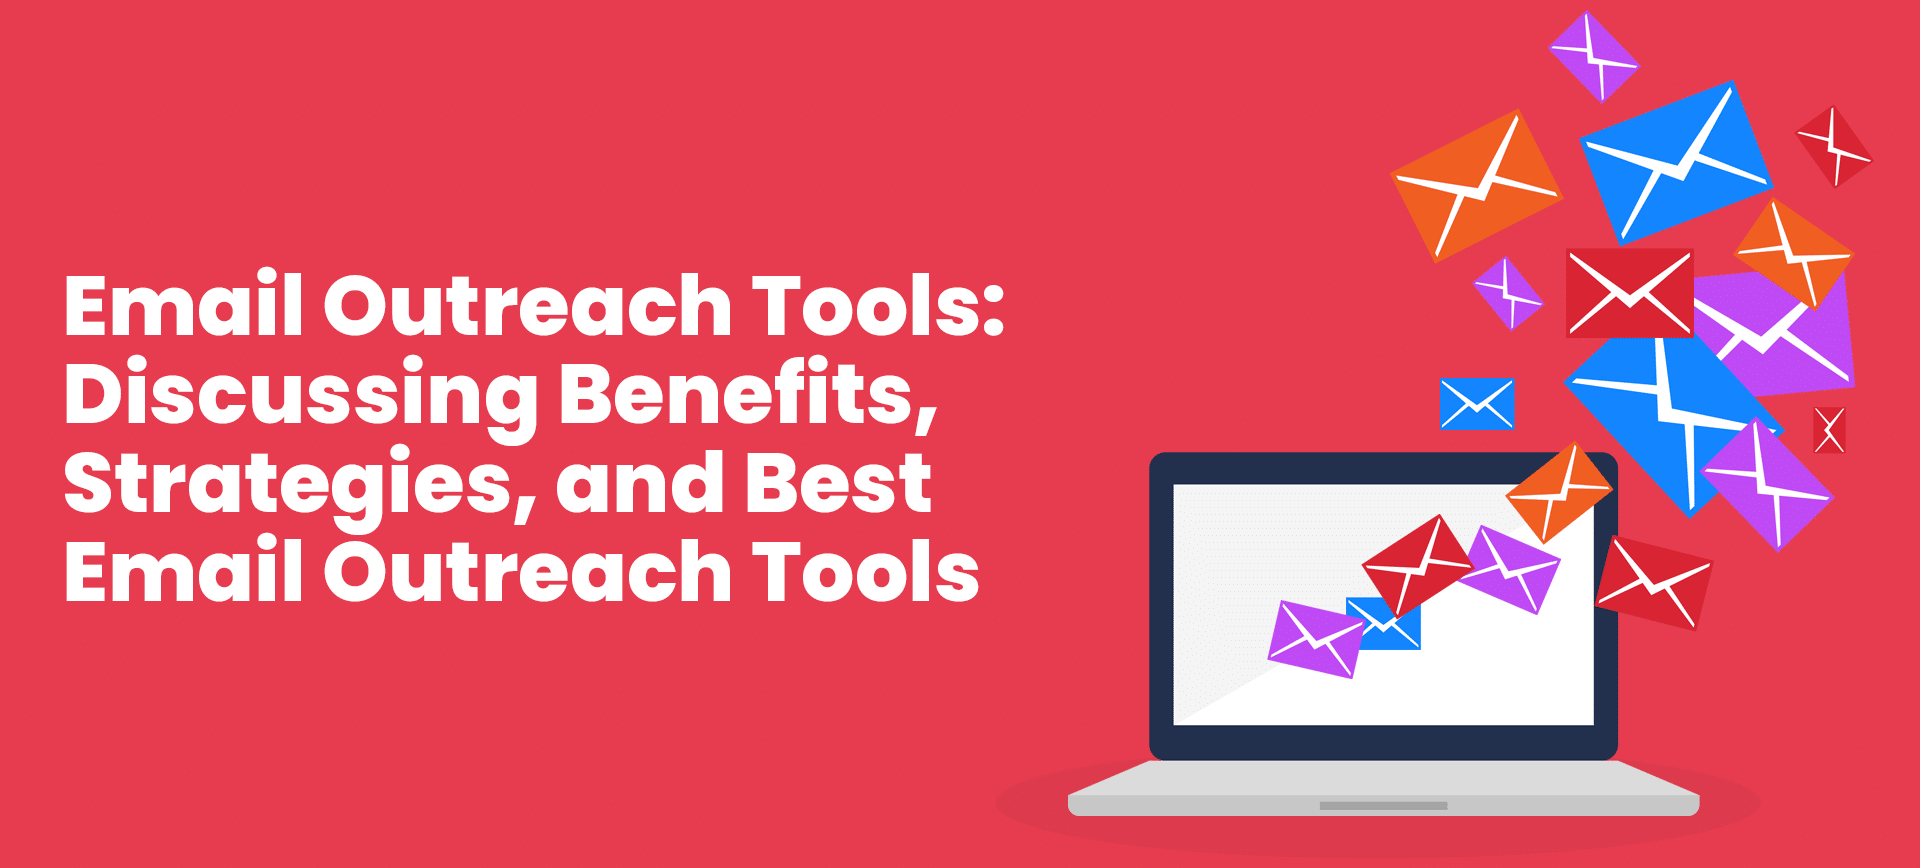 Email Outreach Tools: Discussing Benefits, Strategies, and Best Email Outreach Tools